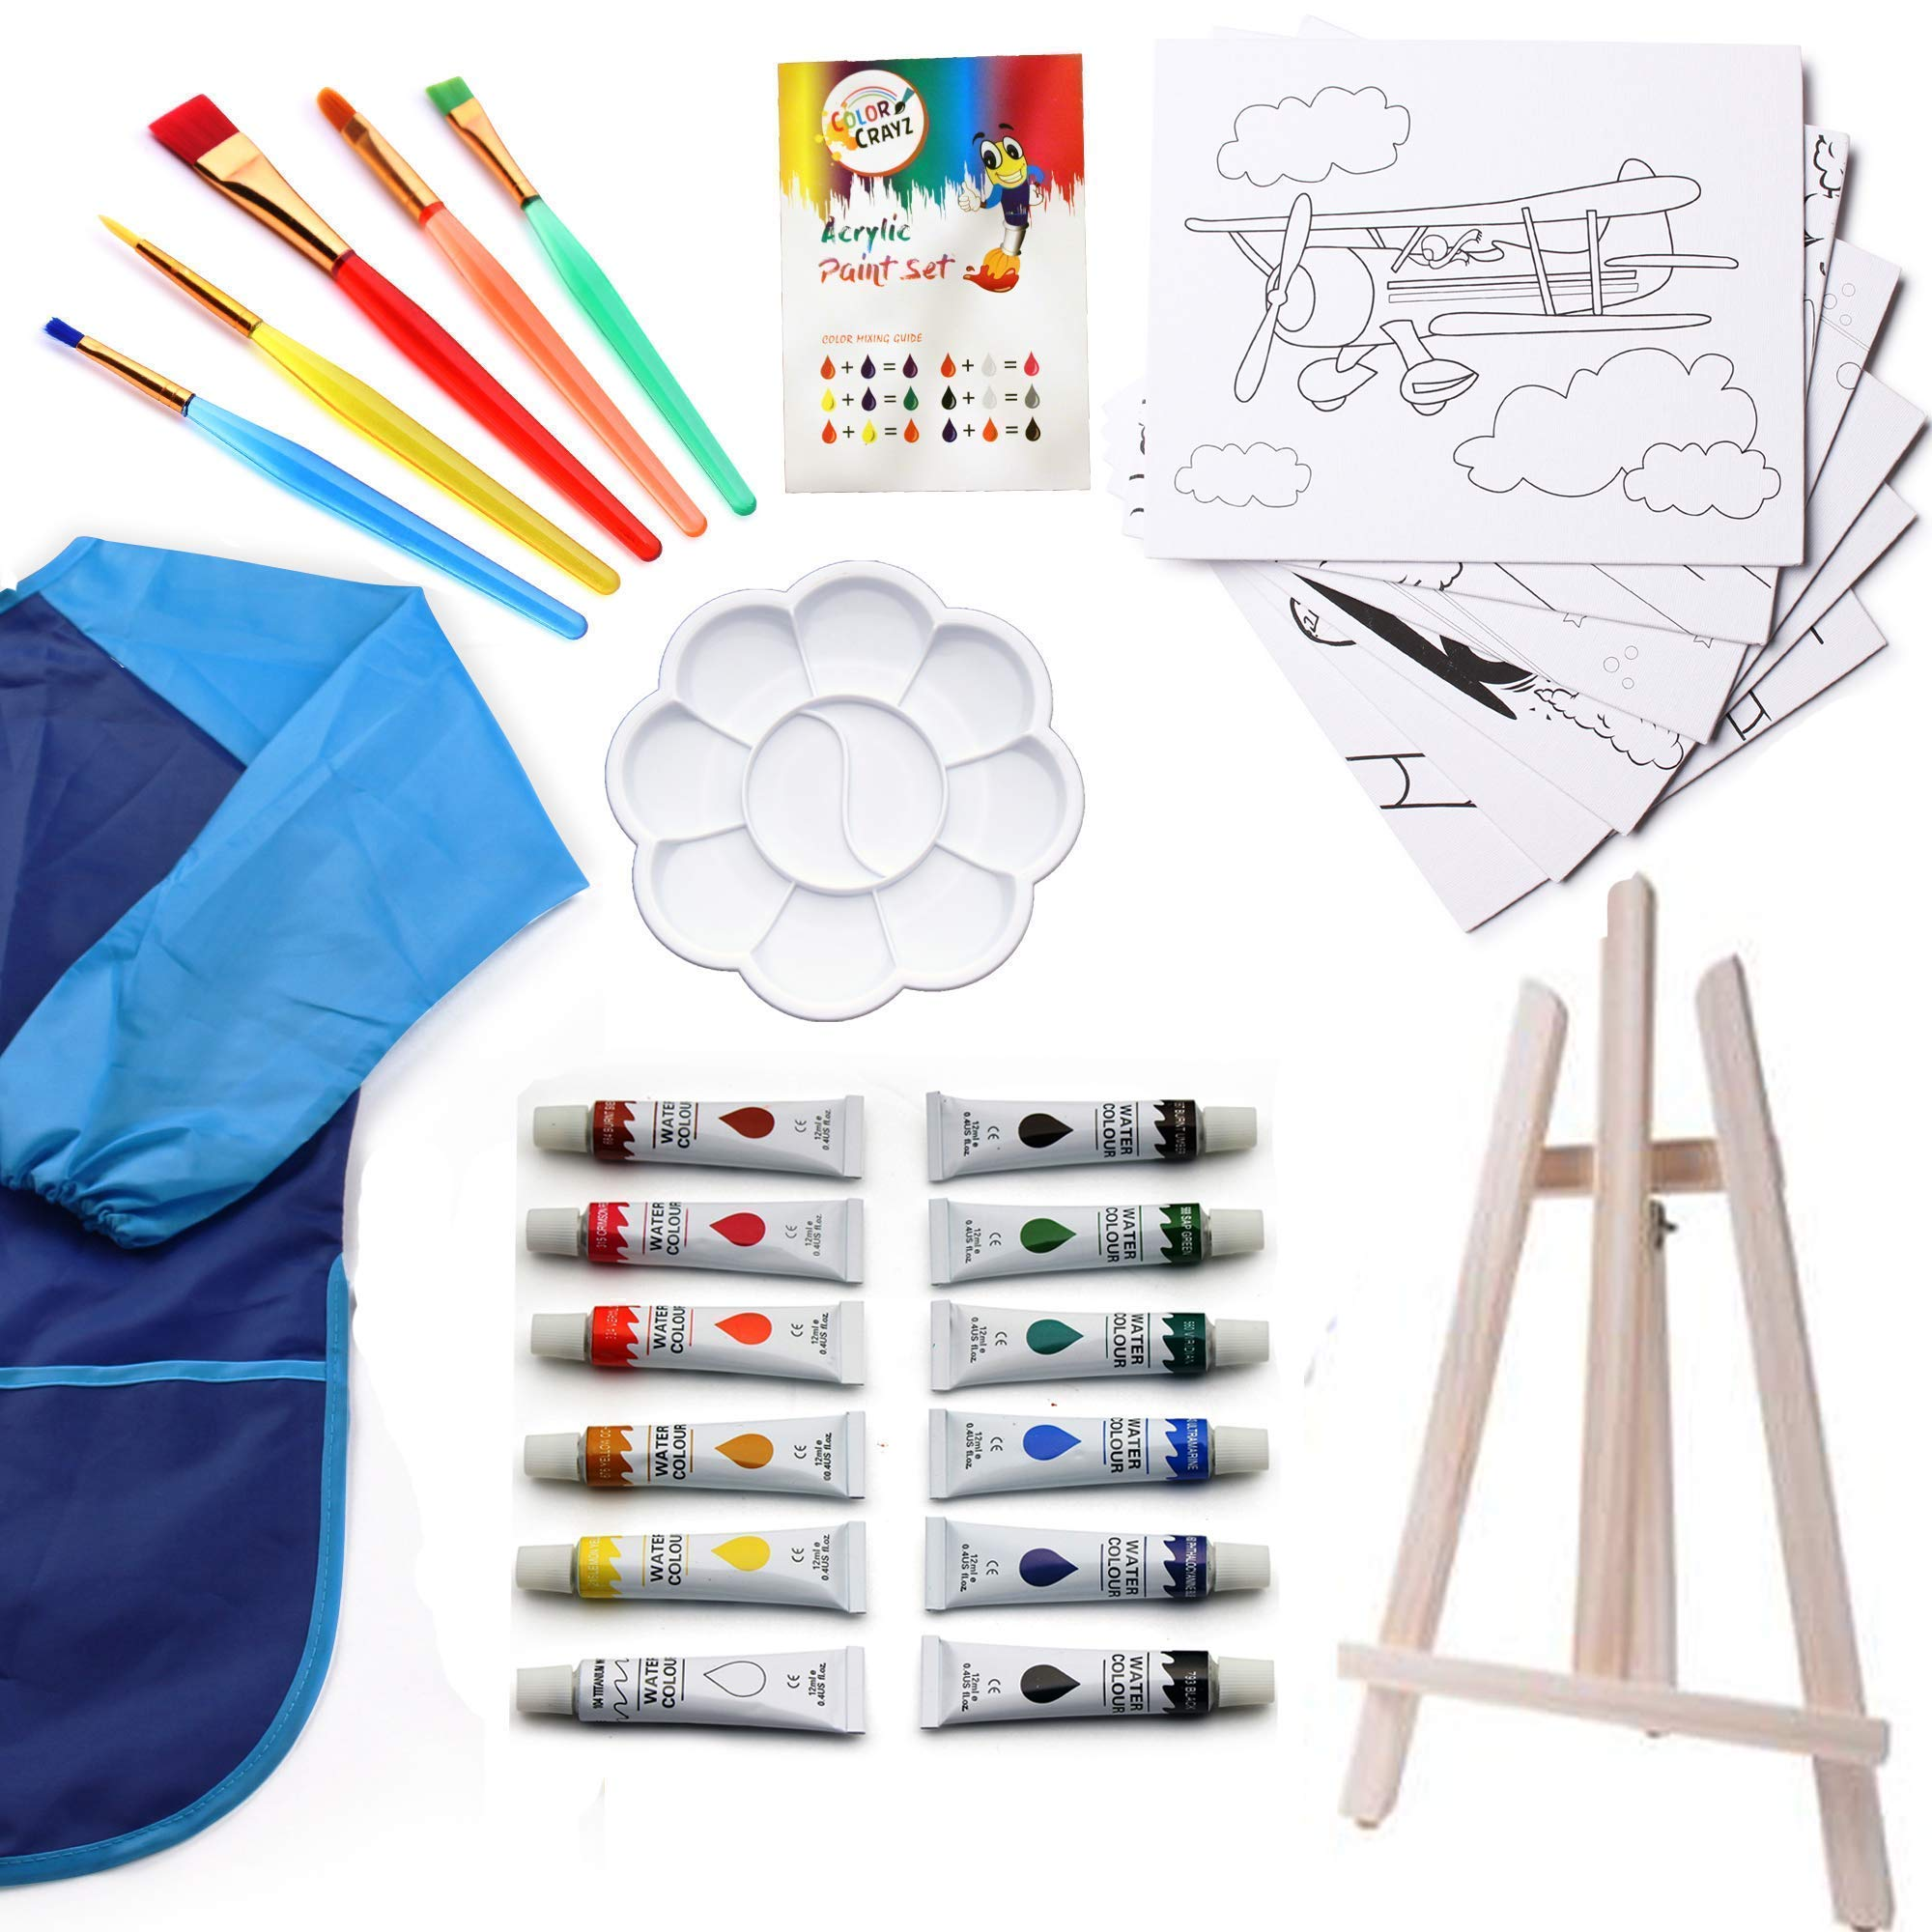 Kids Art Set - 27 piece Water Color paint set for kids, Art Supplies for Drawing, Painting, With Portable Storage Bag - Makes A Great Gift For Beginner Artist by ColorCrayz